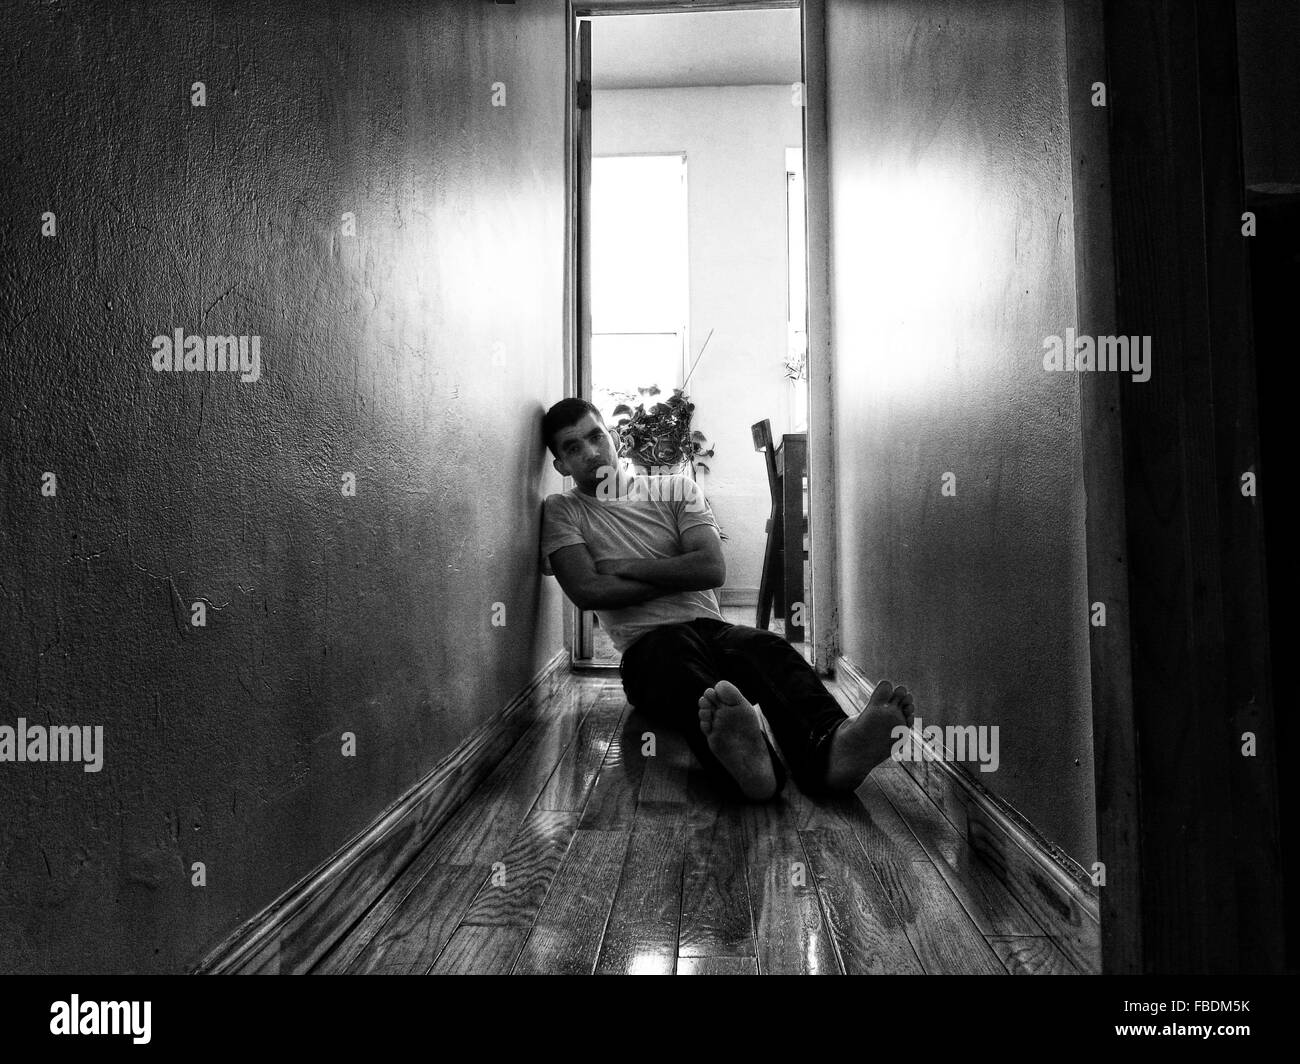 Depressed Young Man Sitting On Floor - Stock Image